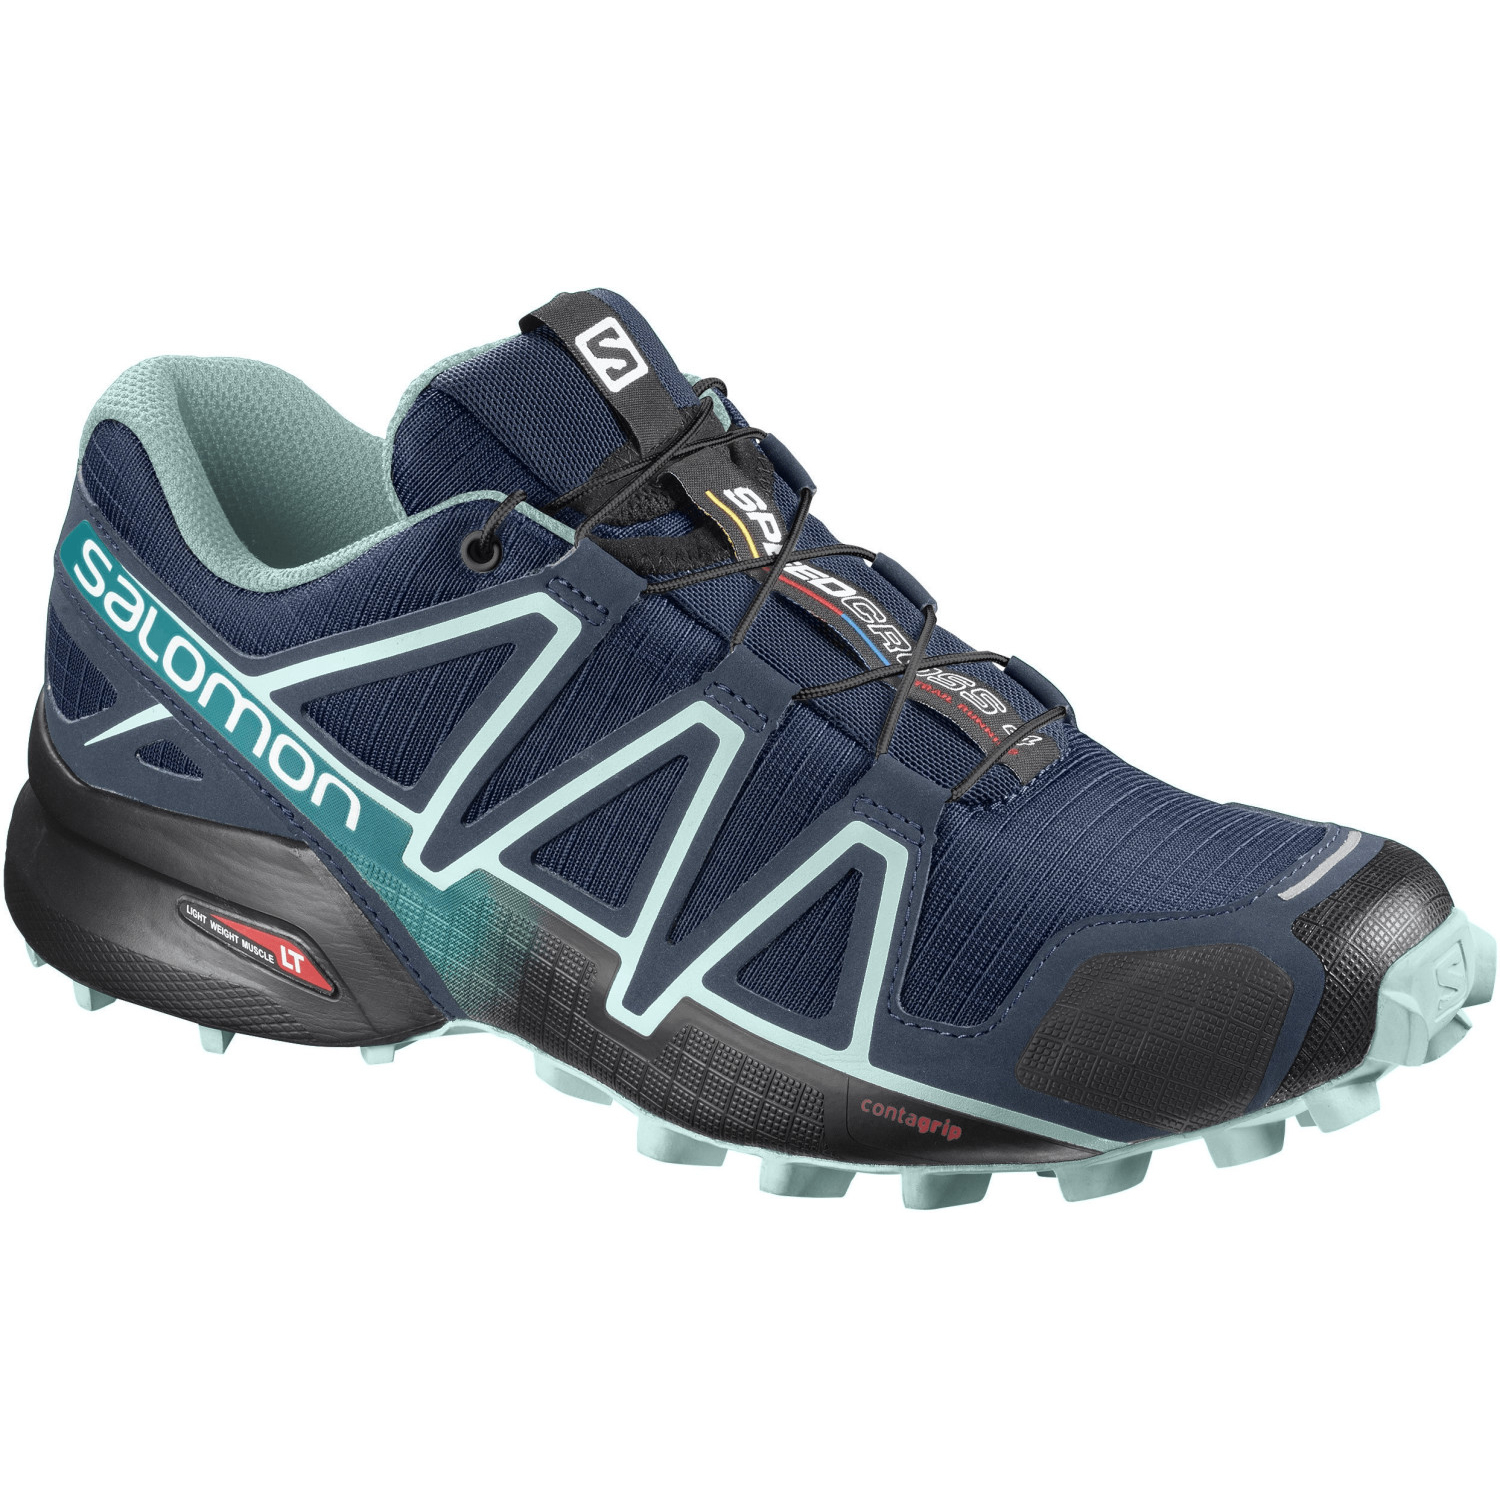 Salomon SPEEDCROSS 4 W Pose/Egg Laufschuhe EU Gr. 38